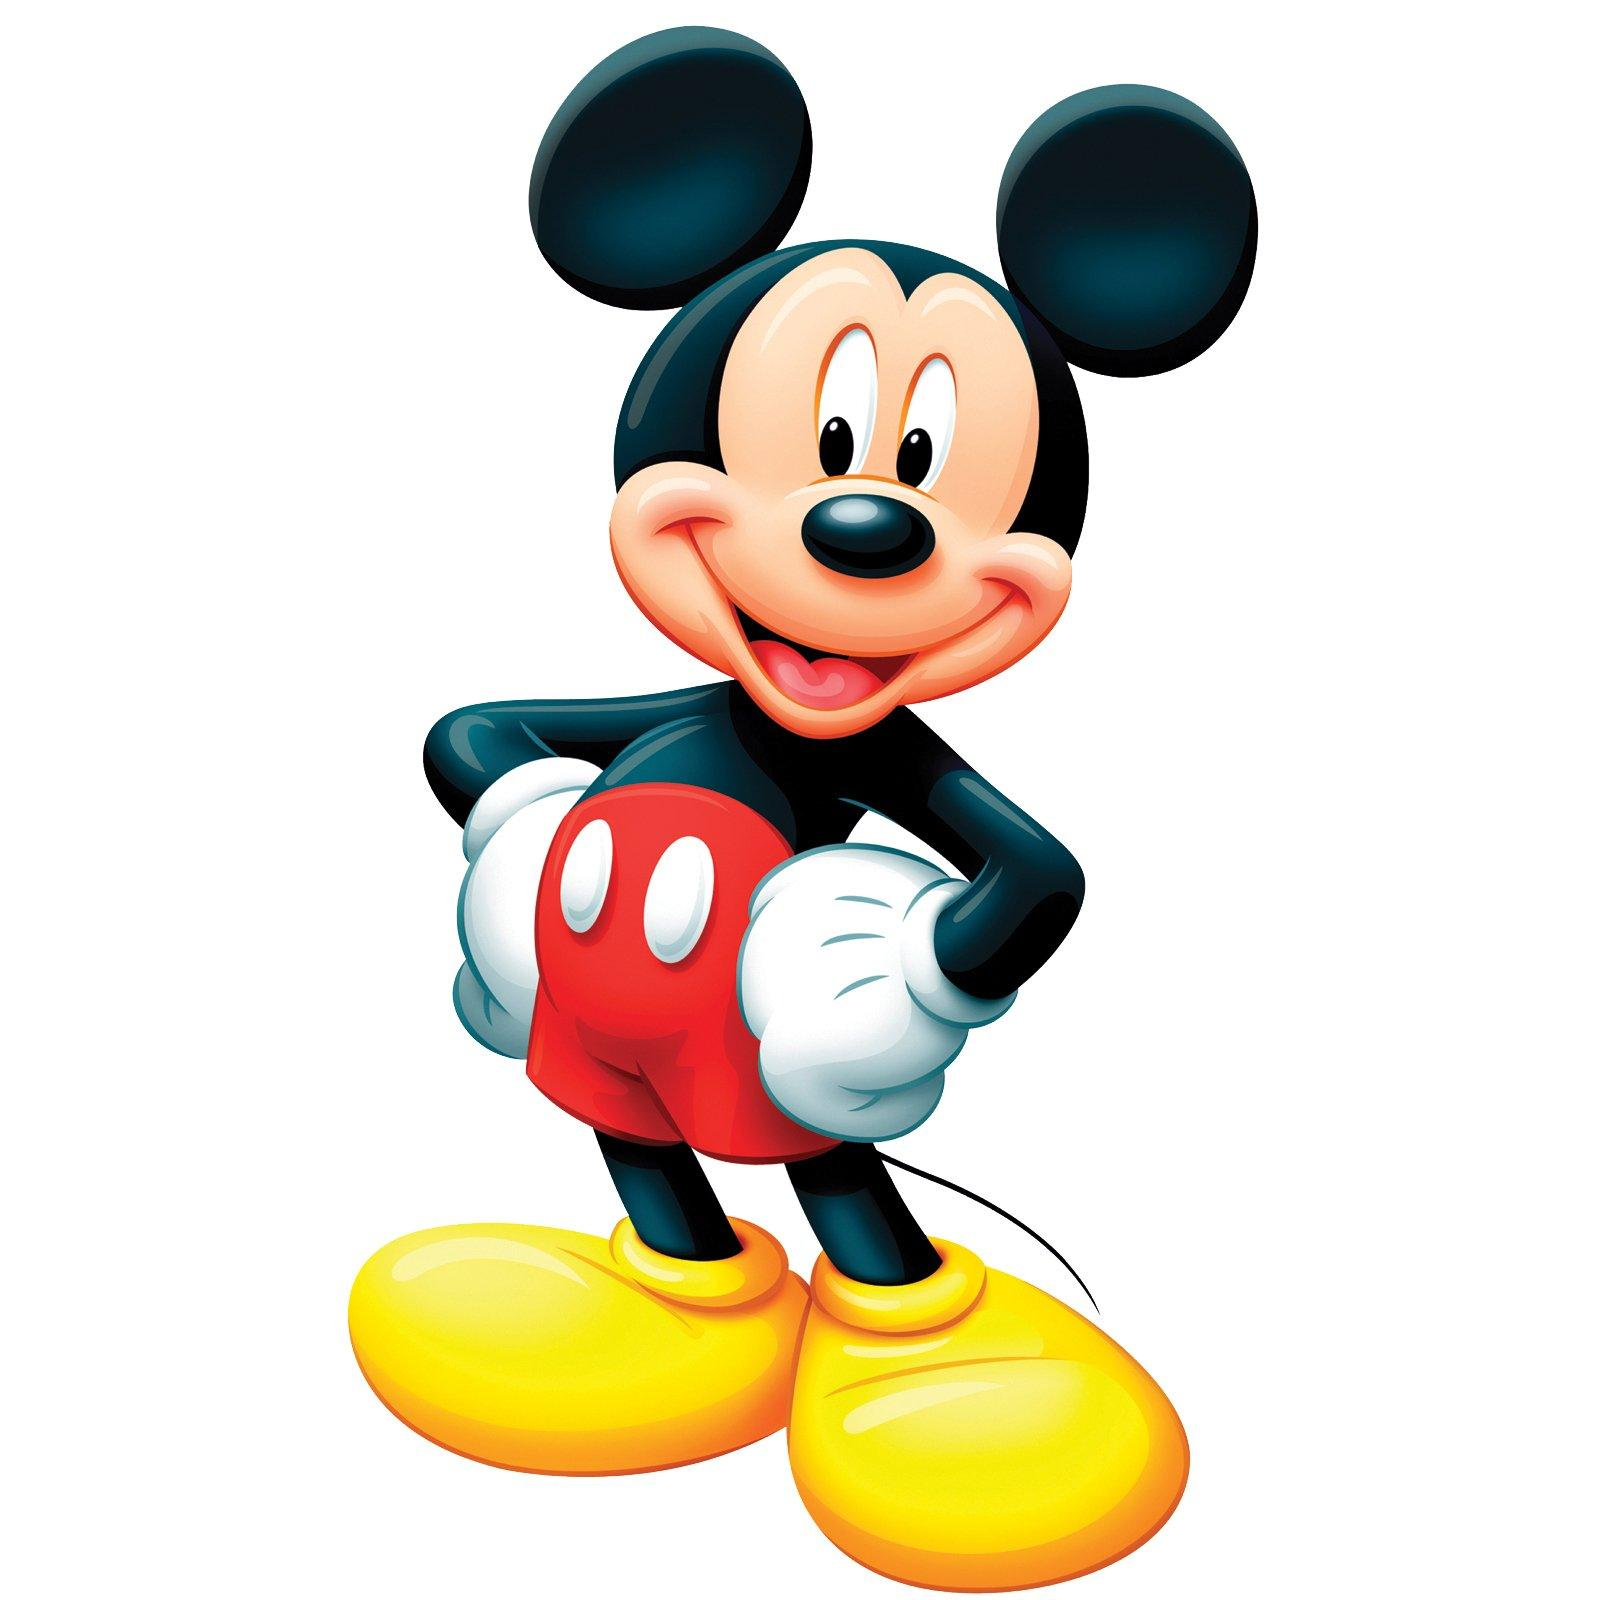 Mickey mouse birthday pictures wallpaper welcometorust clip art